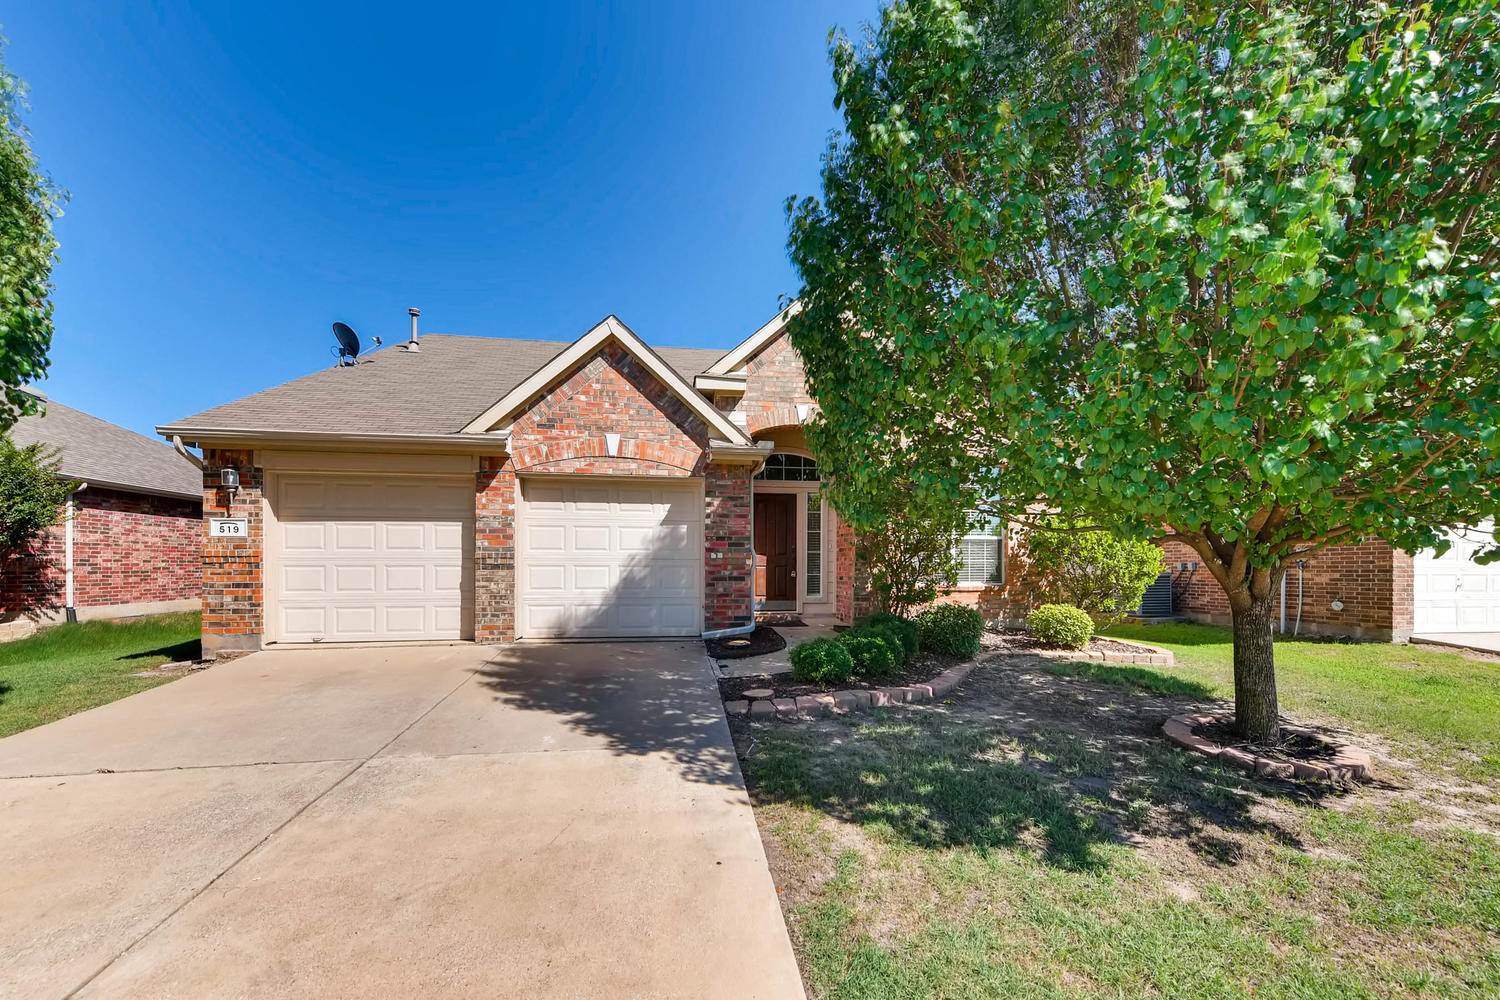 Photo of 519 Wolf Drive, Forney, TX, 75126